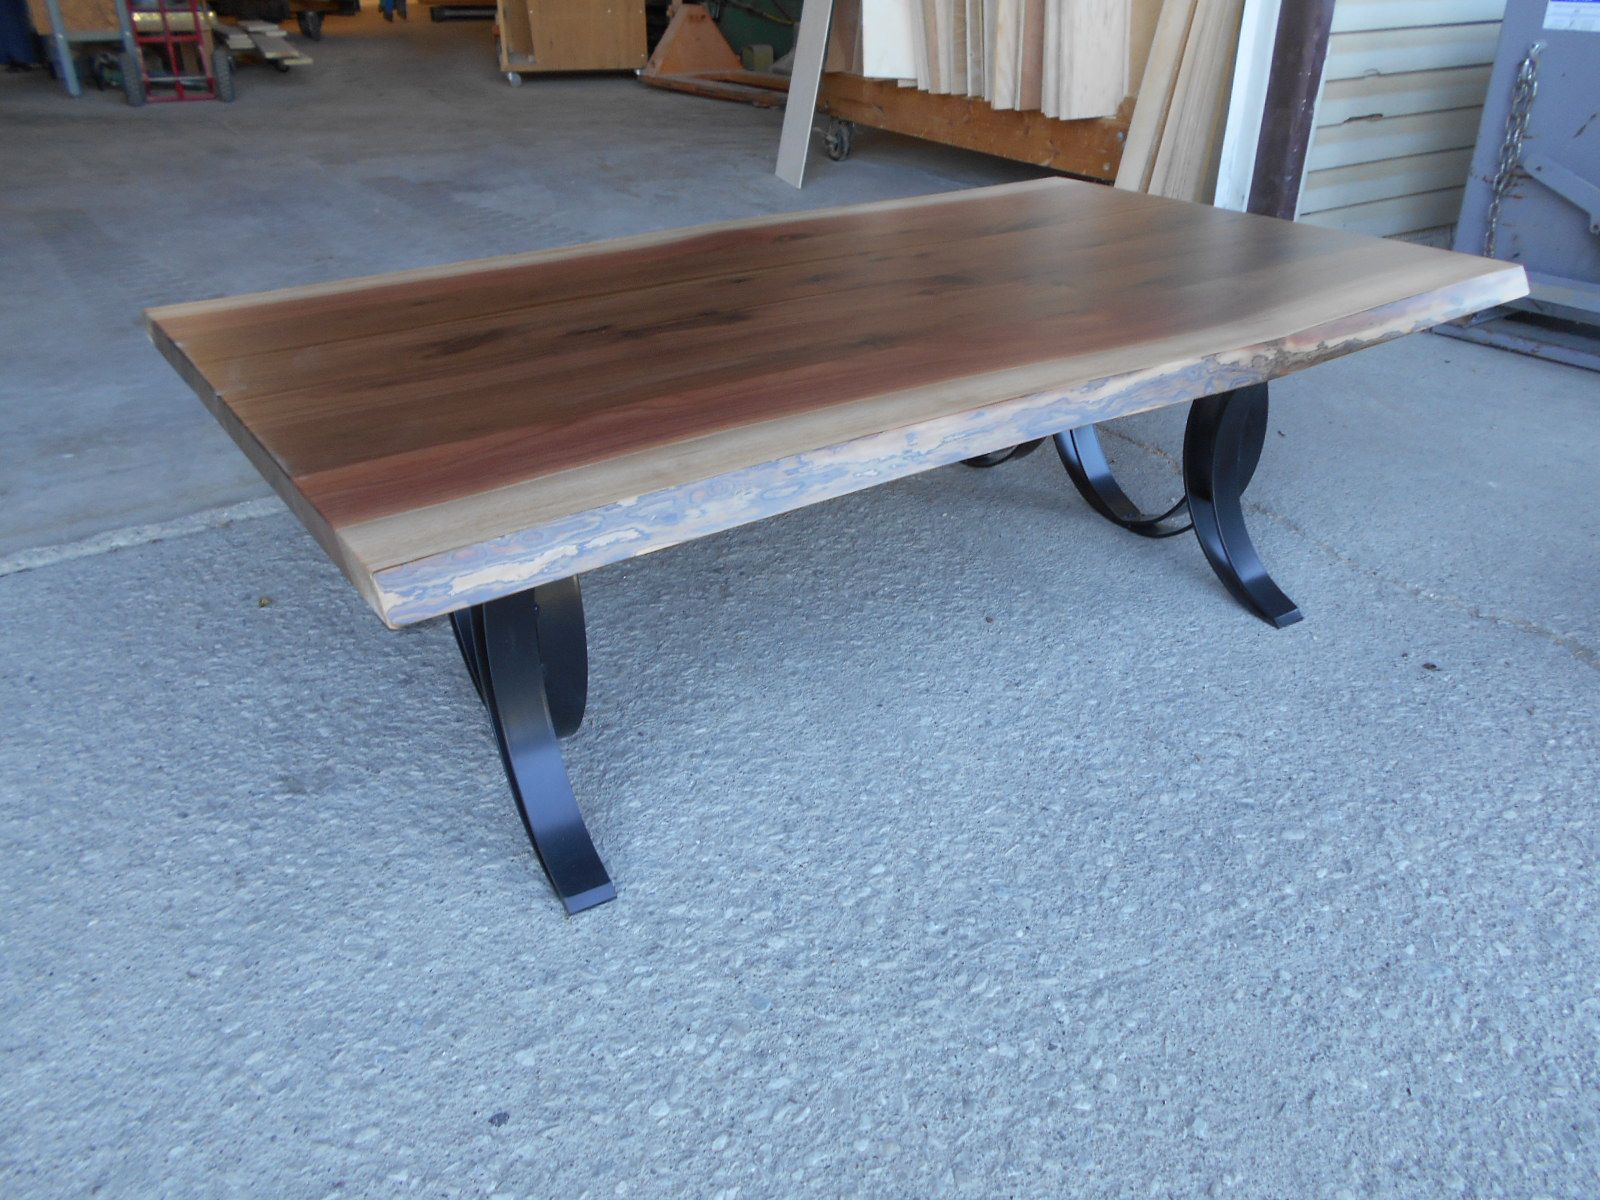 Live Edge Walnut Wood Coffee Table Natural 33 X 60 X 18 With A Double Curved